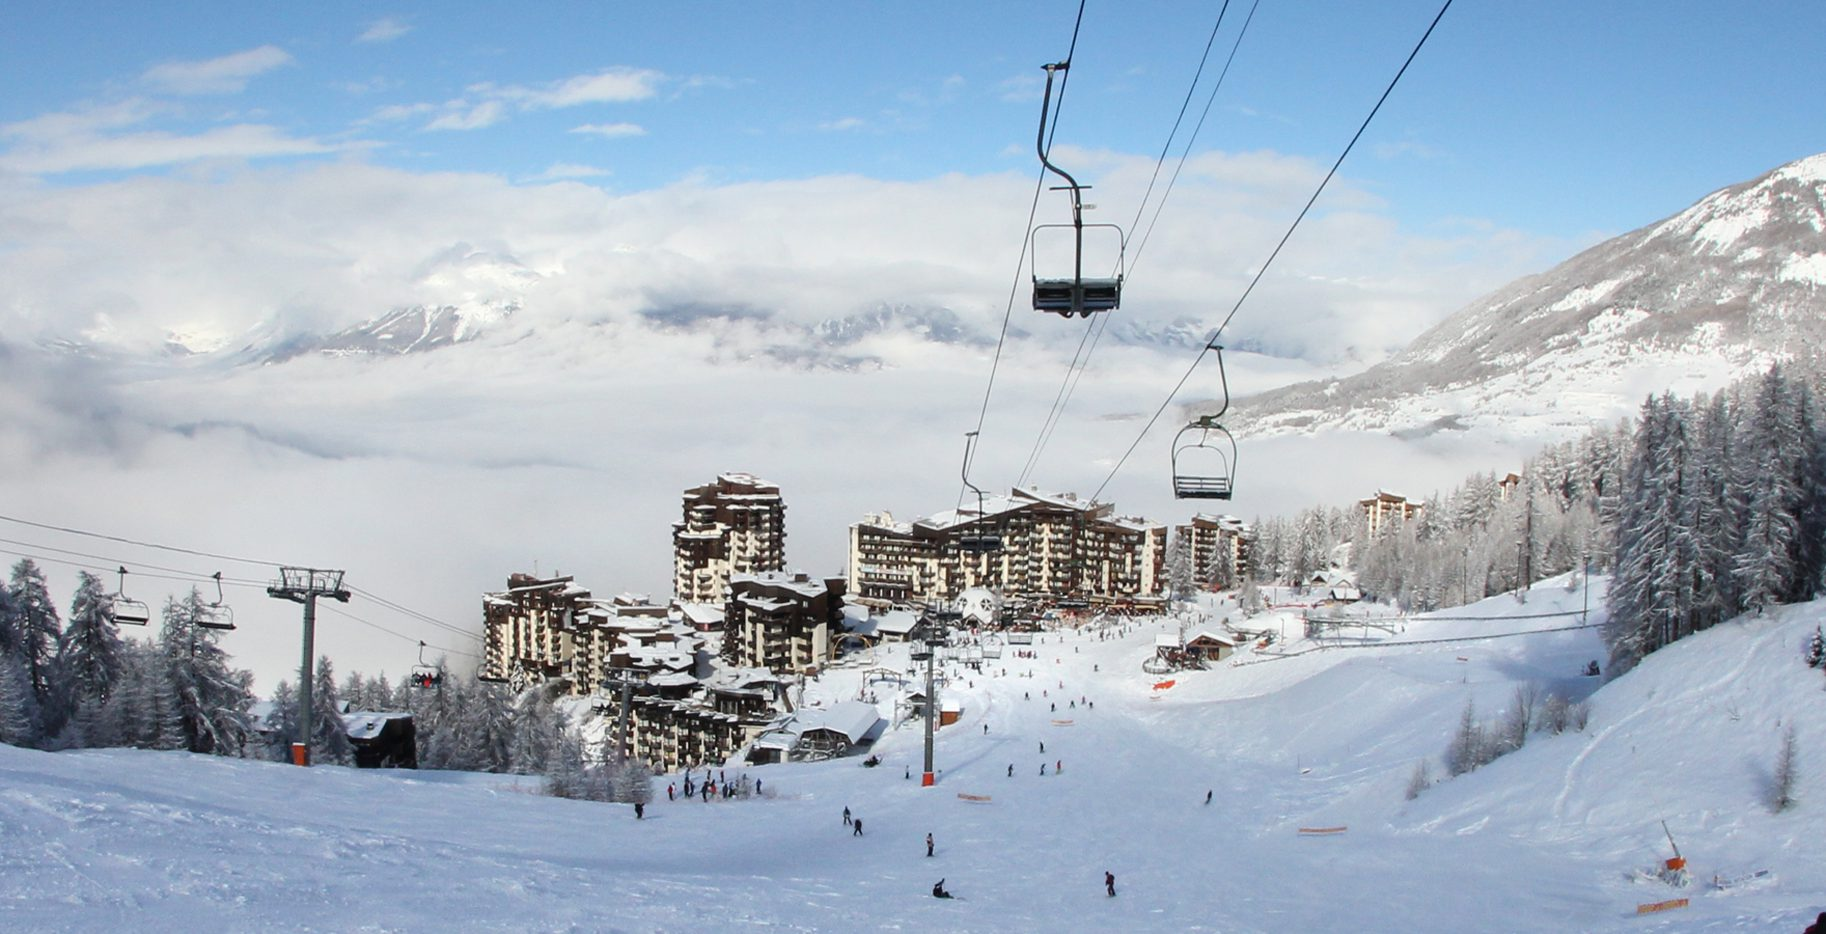 A view looking back at the village of Les Orres from a ski lift